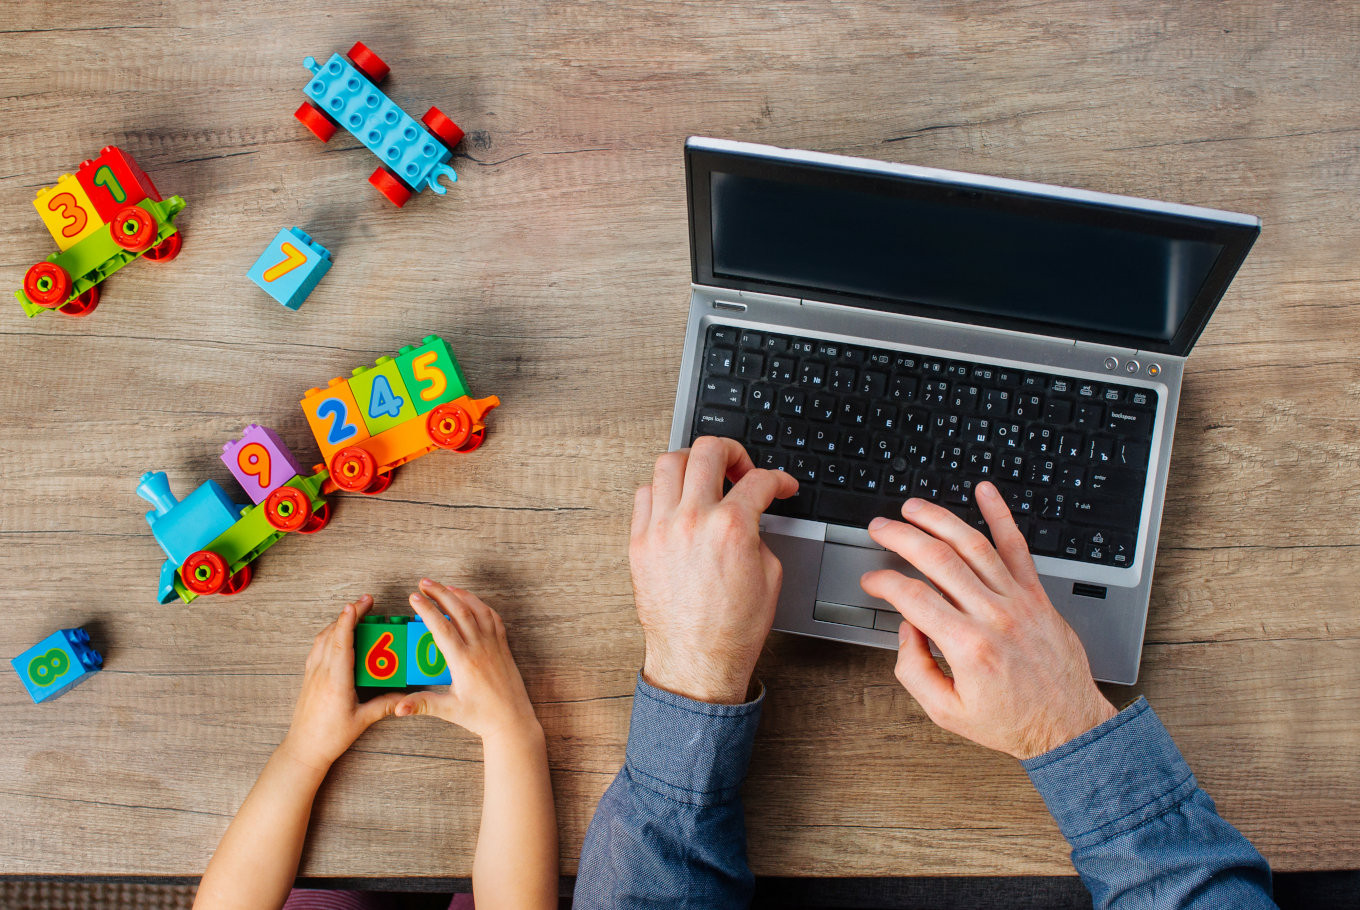 Online fashion retailer Zalora launches toy collections